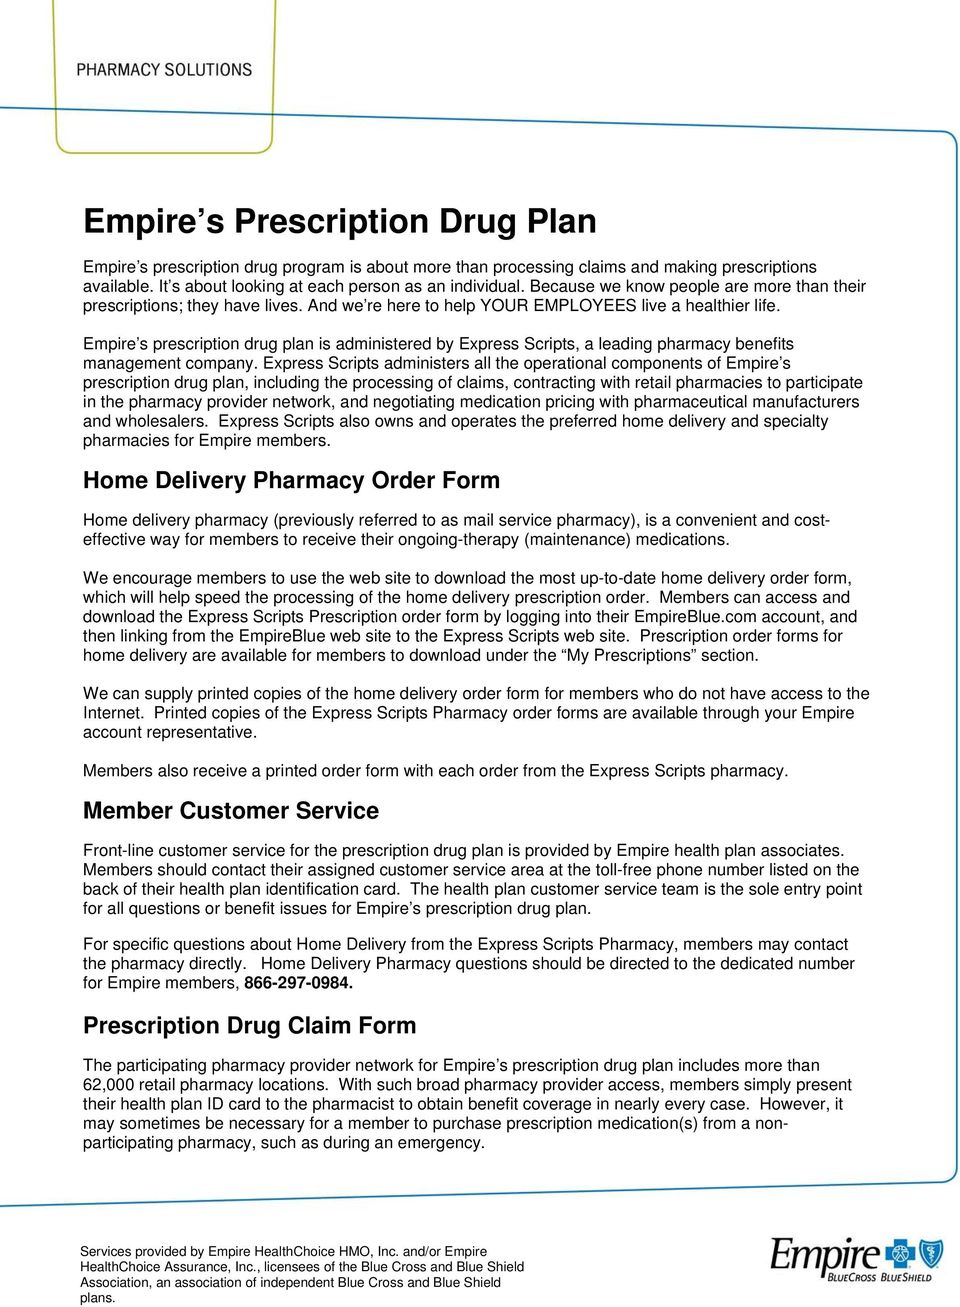 Empire s prescription drug plan is administered by Express Scripts, a leading pharmacy benefits management company.